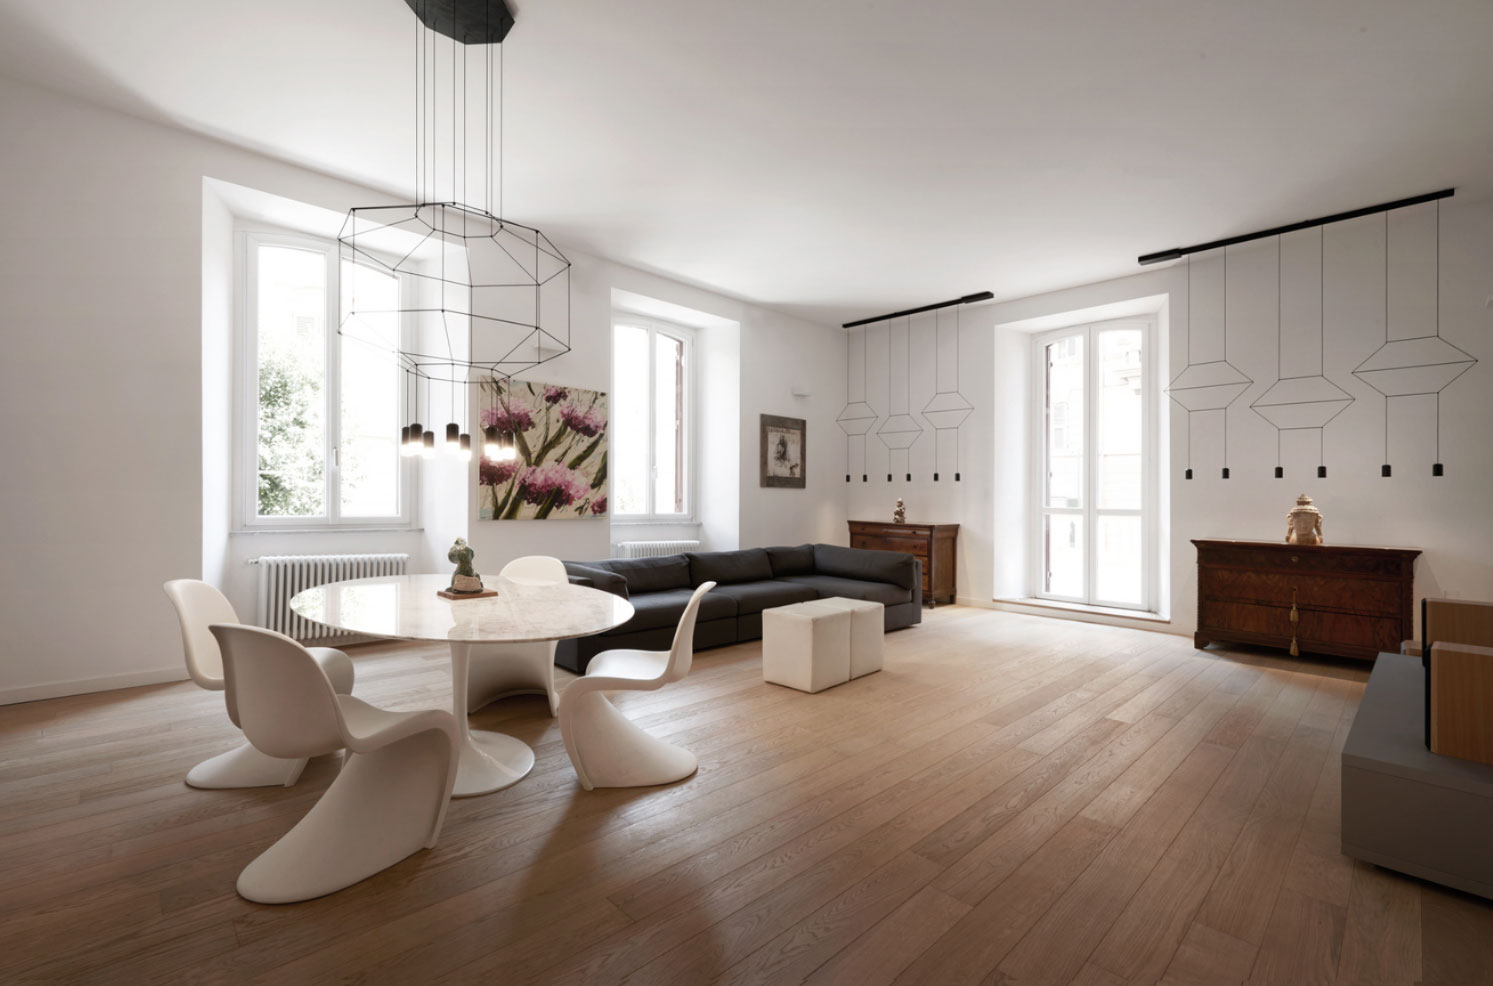 Z Apartment in Rome: When The New and the Old Meet